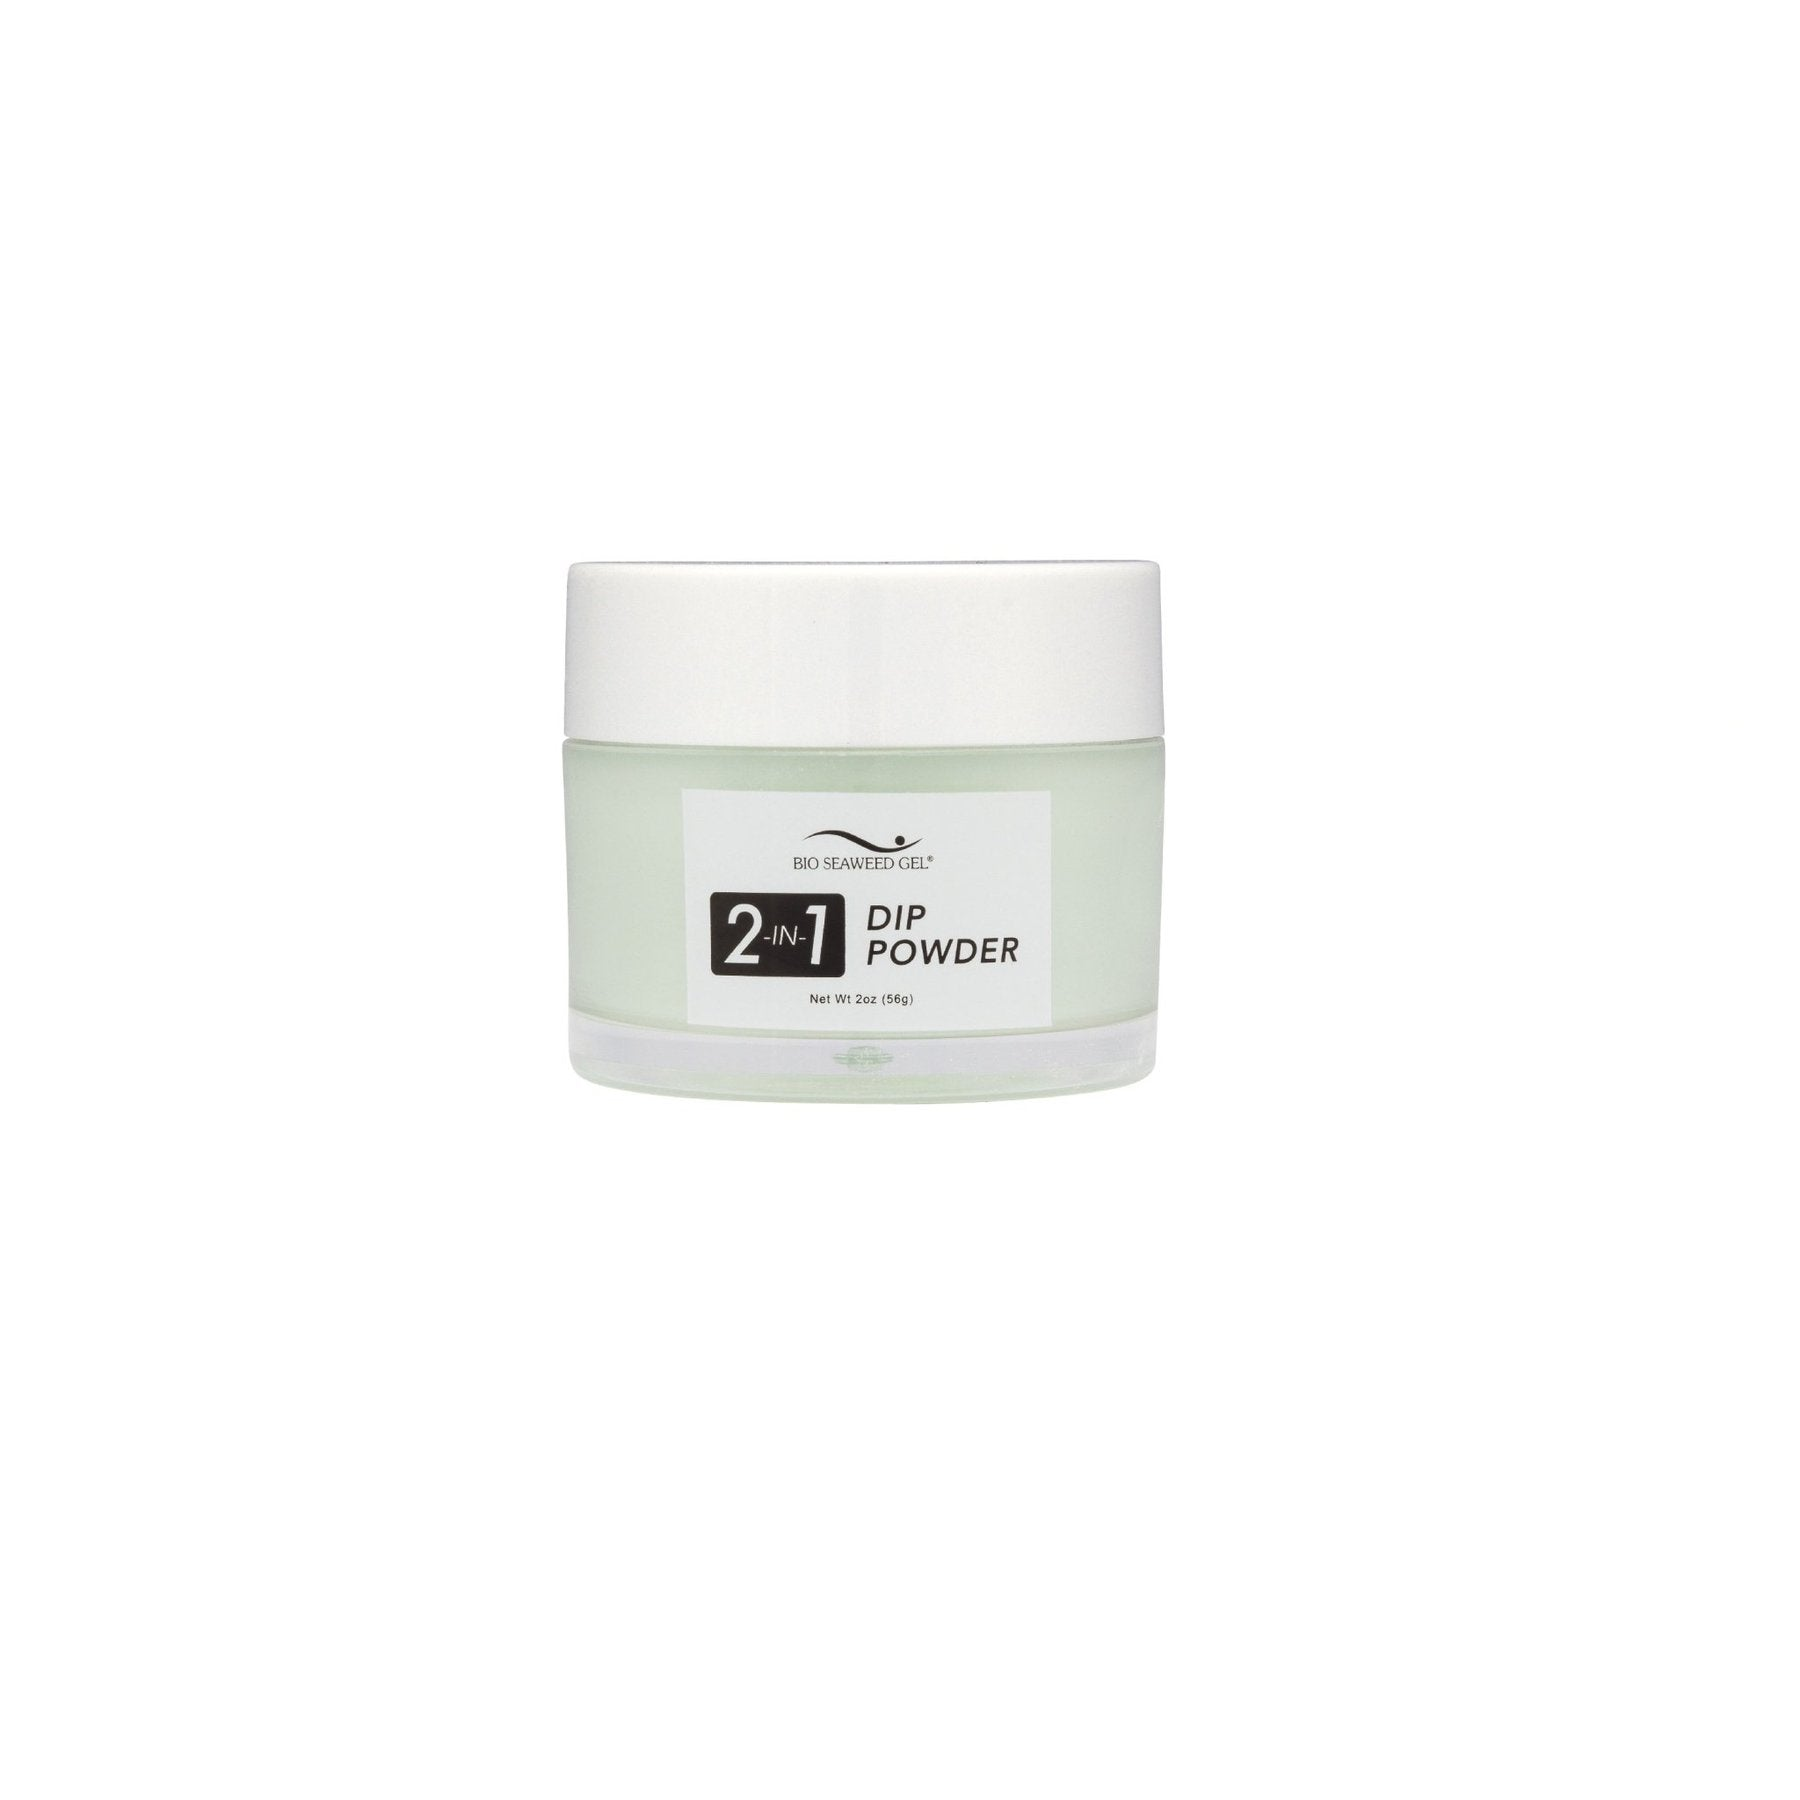 16 SEAFOAM | Bio Seaweed Gel® Dip Powder System - CM Nails & Beauty Supply